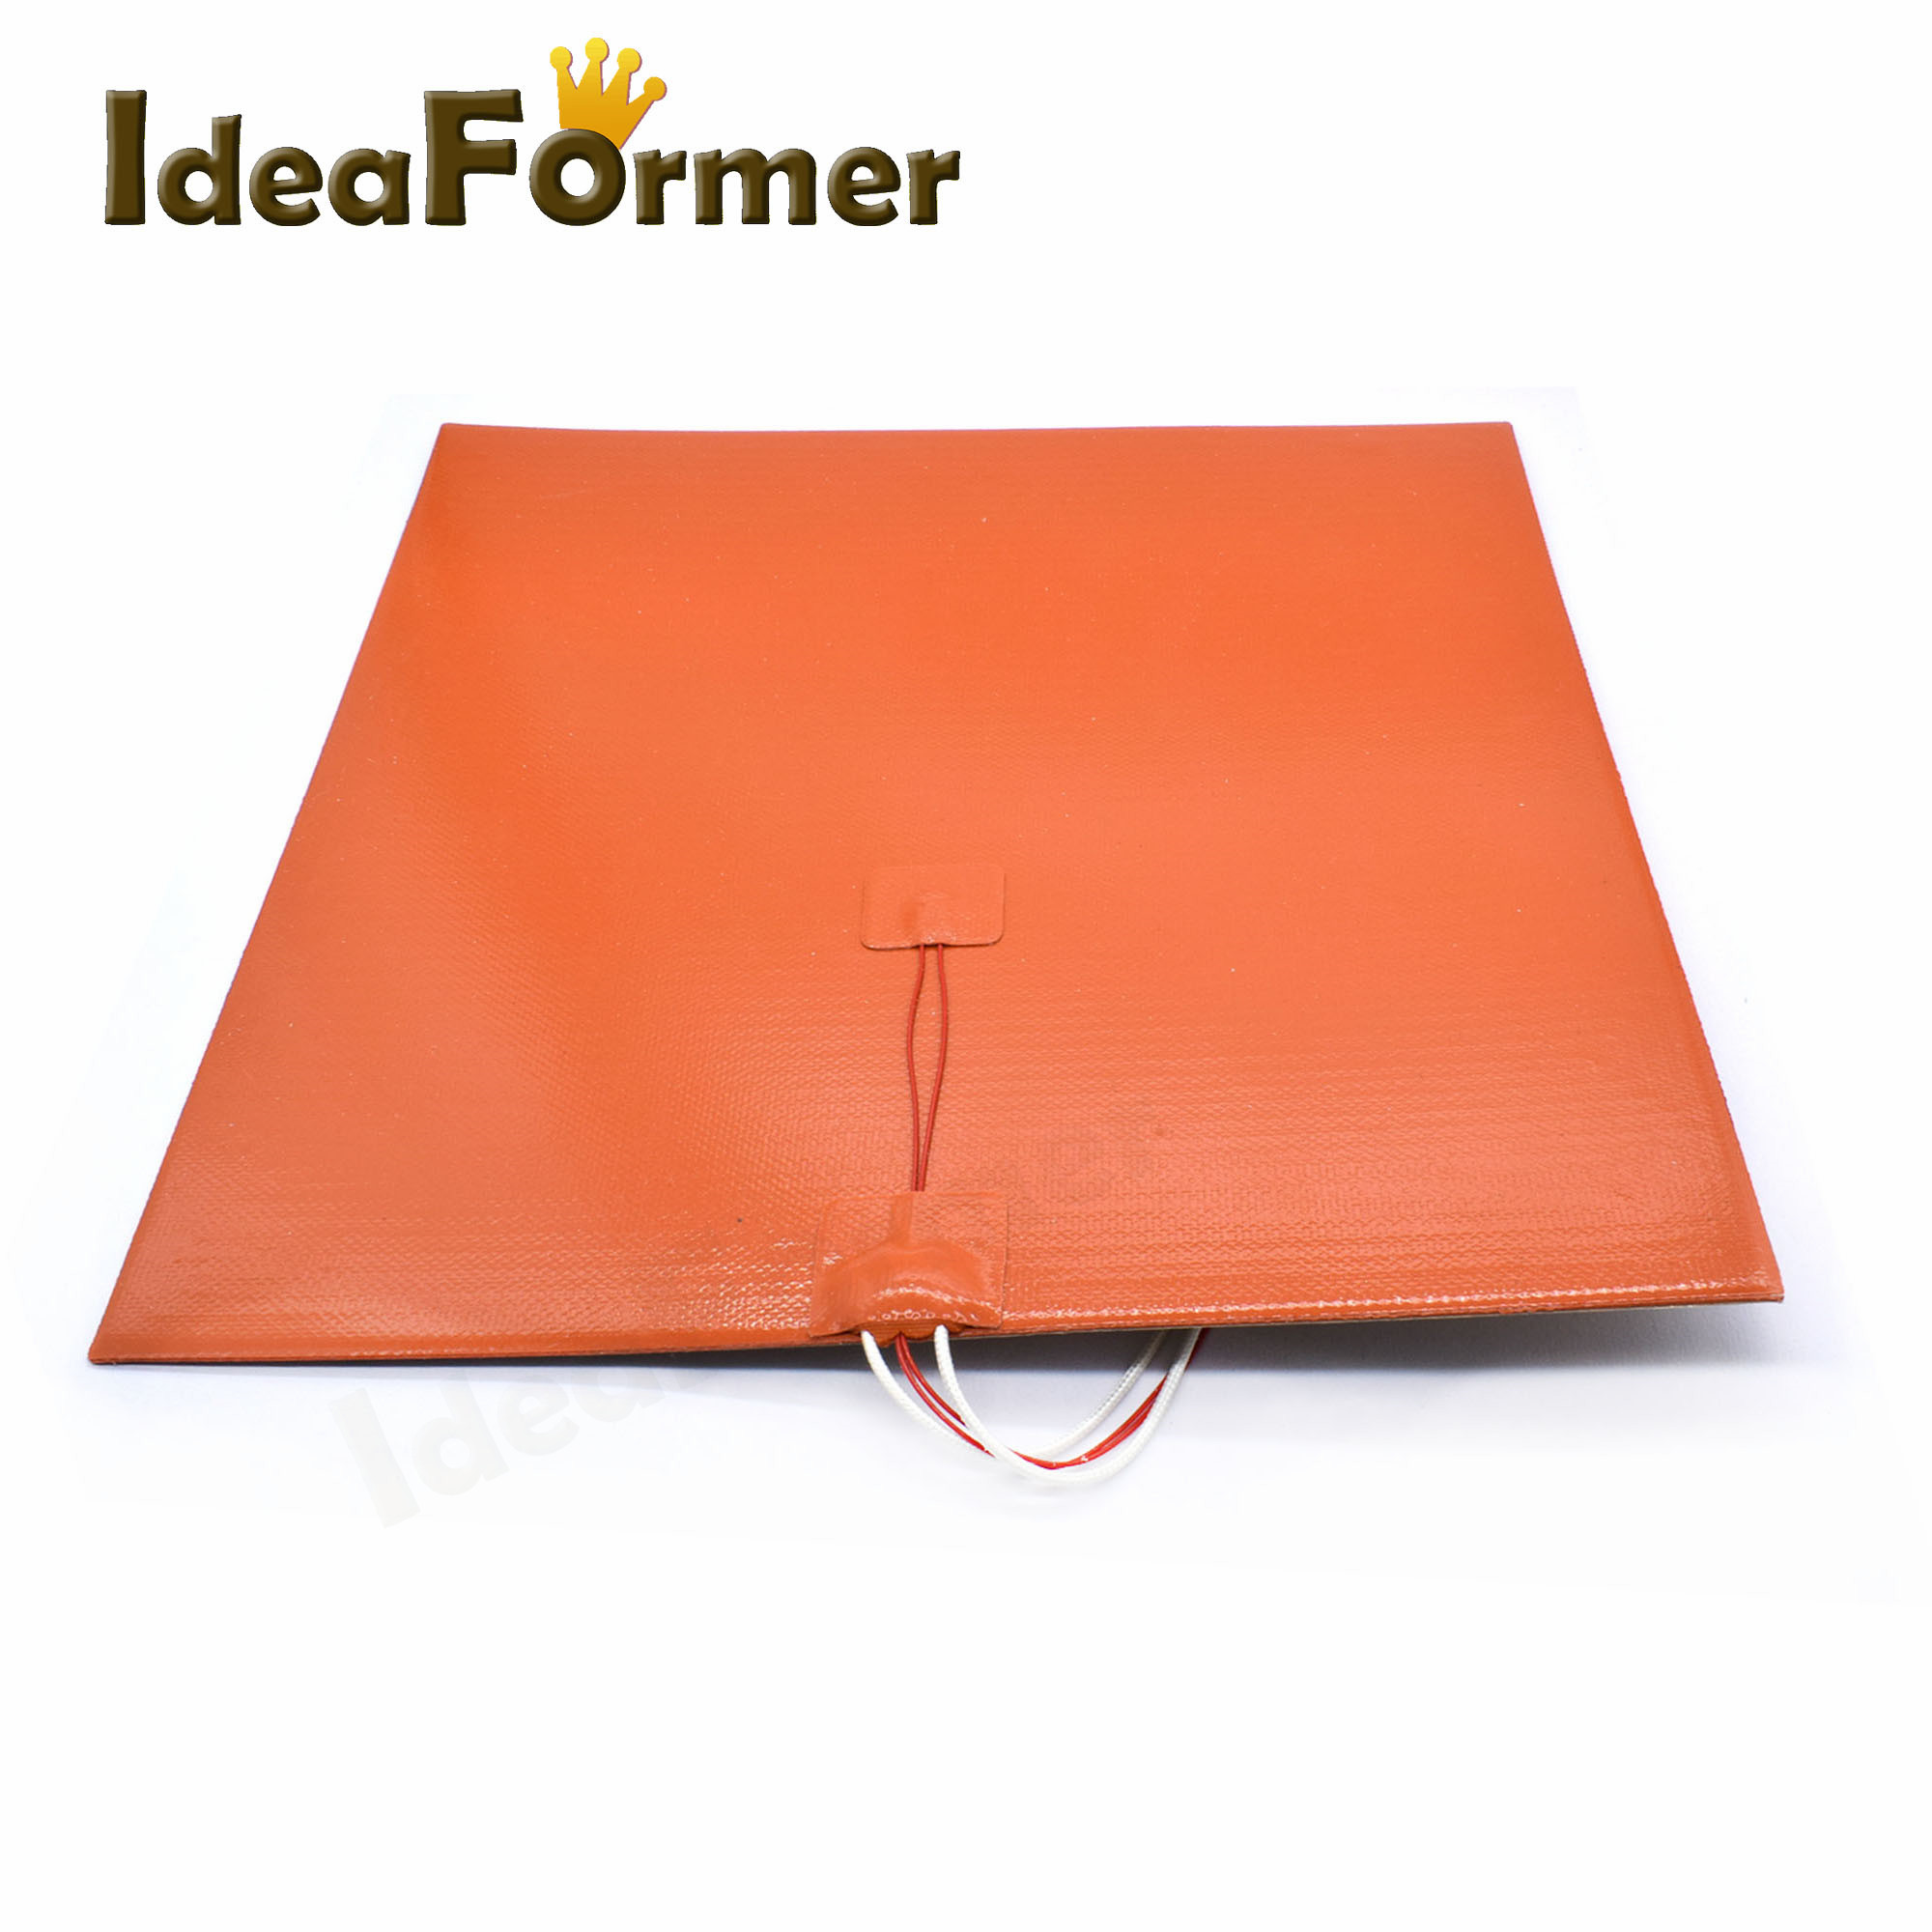 3D Printer Silicone Heating Pad Hot Bed 220 220 235 235 300 300 310 310 400 400mm 24V 110V 220V 200-800W 3M adhesive thermistor